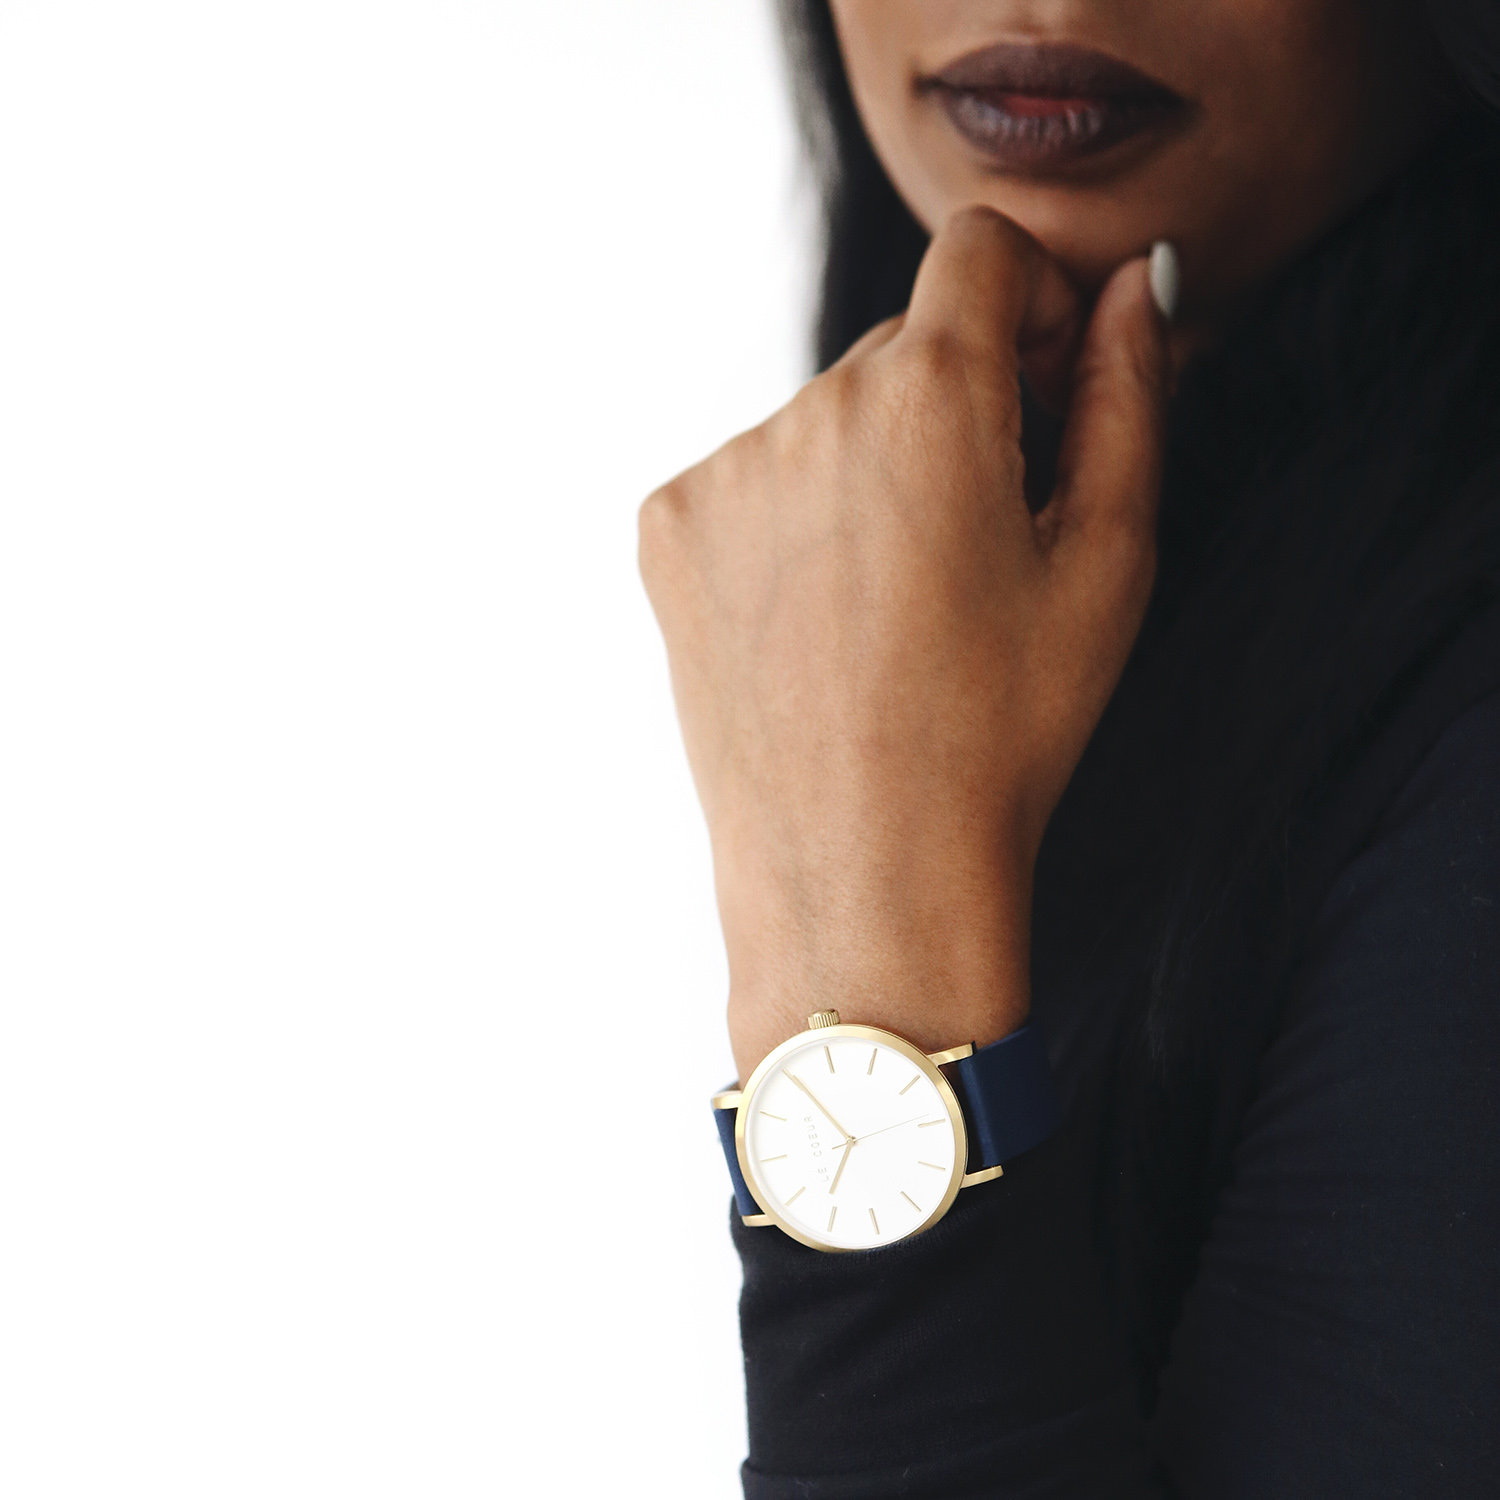 Le Coeur Gold Navy Oxford Timepiece10.jpg